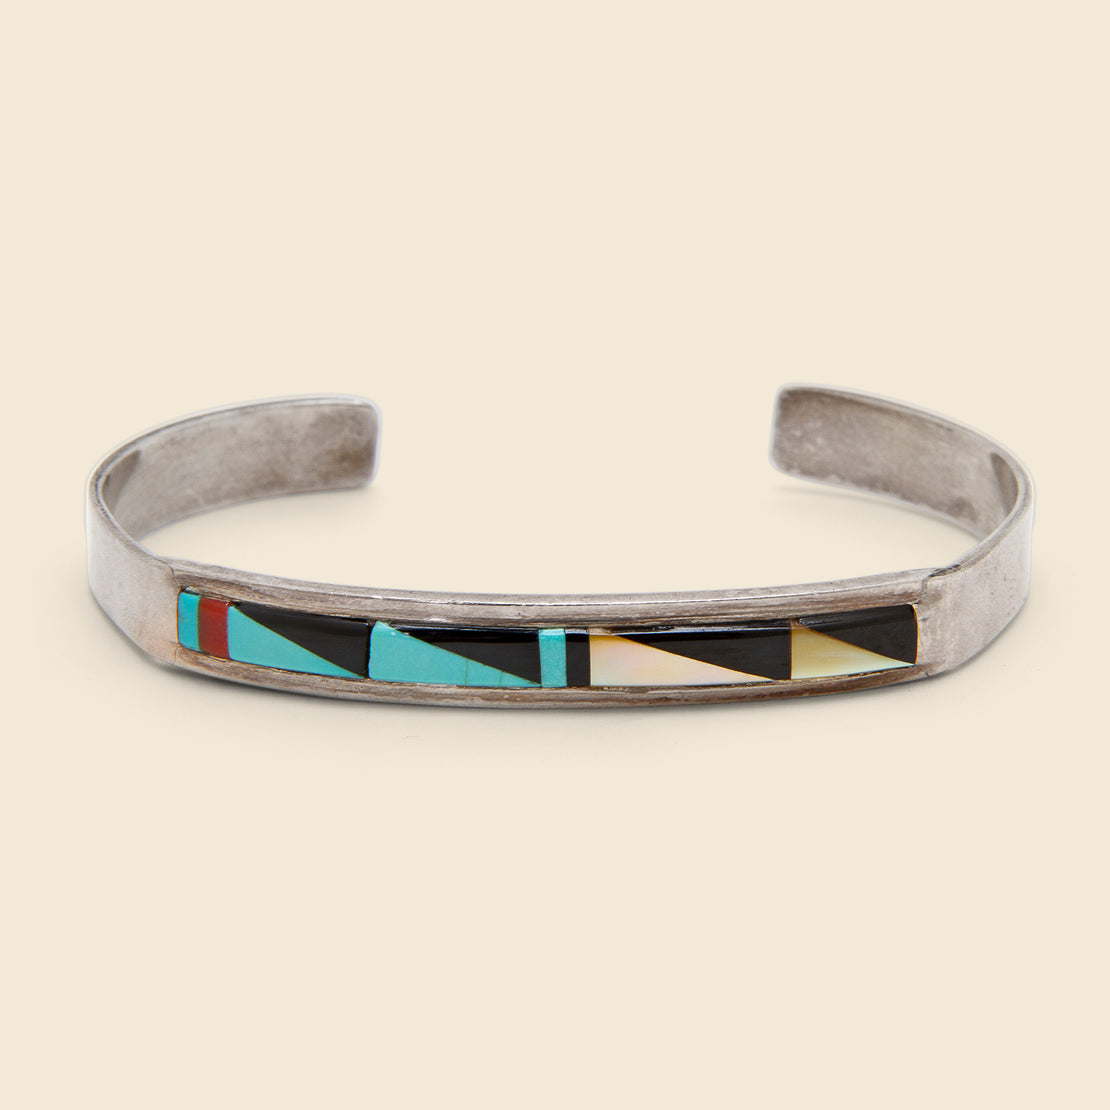 Vintage Zuni Inlay Cuff - Sterling/Turquoise/Onyx/Mother of Pearl